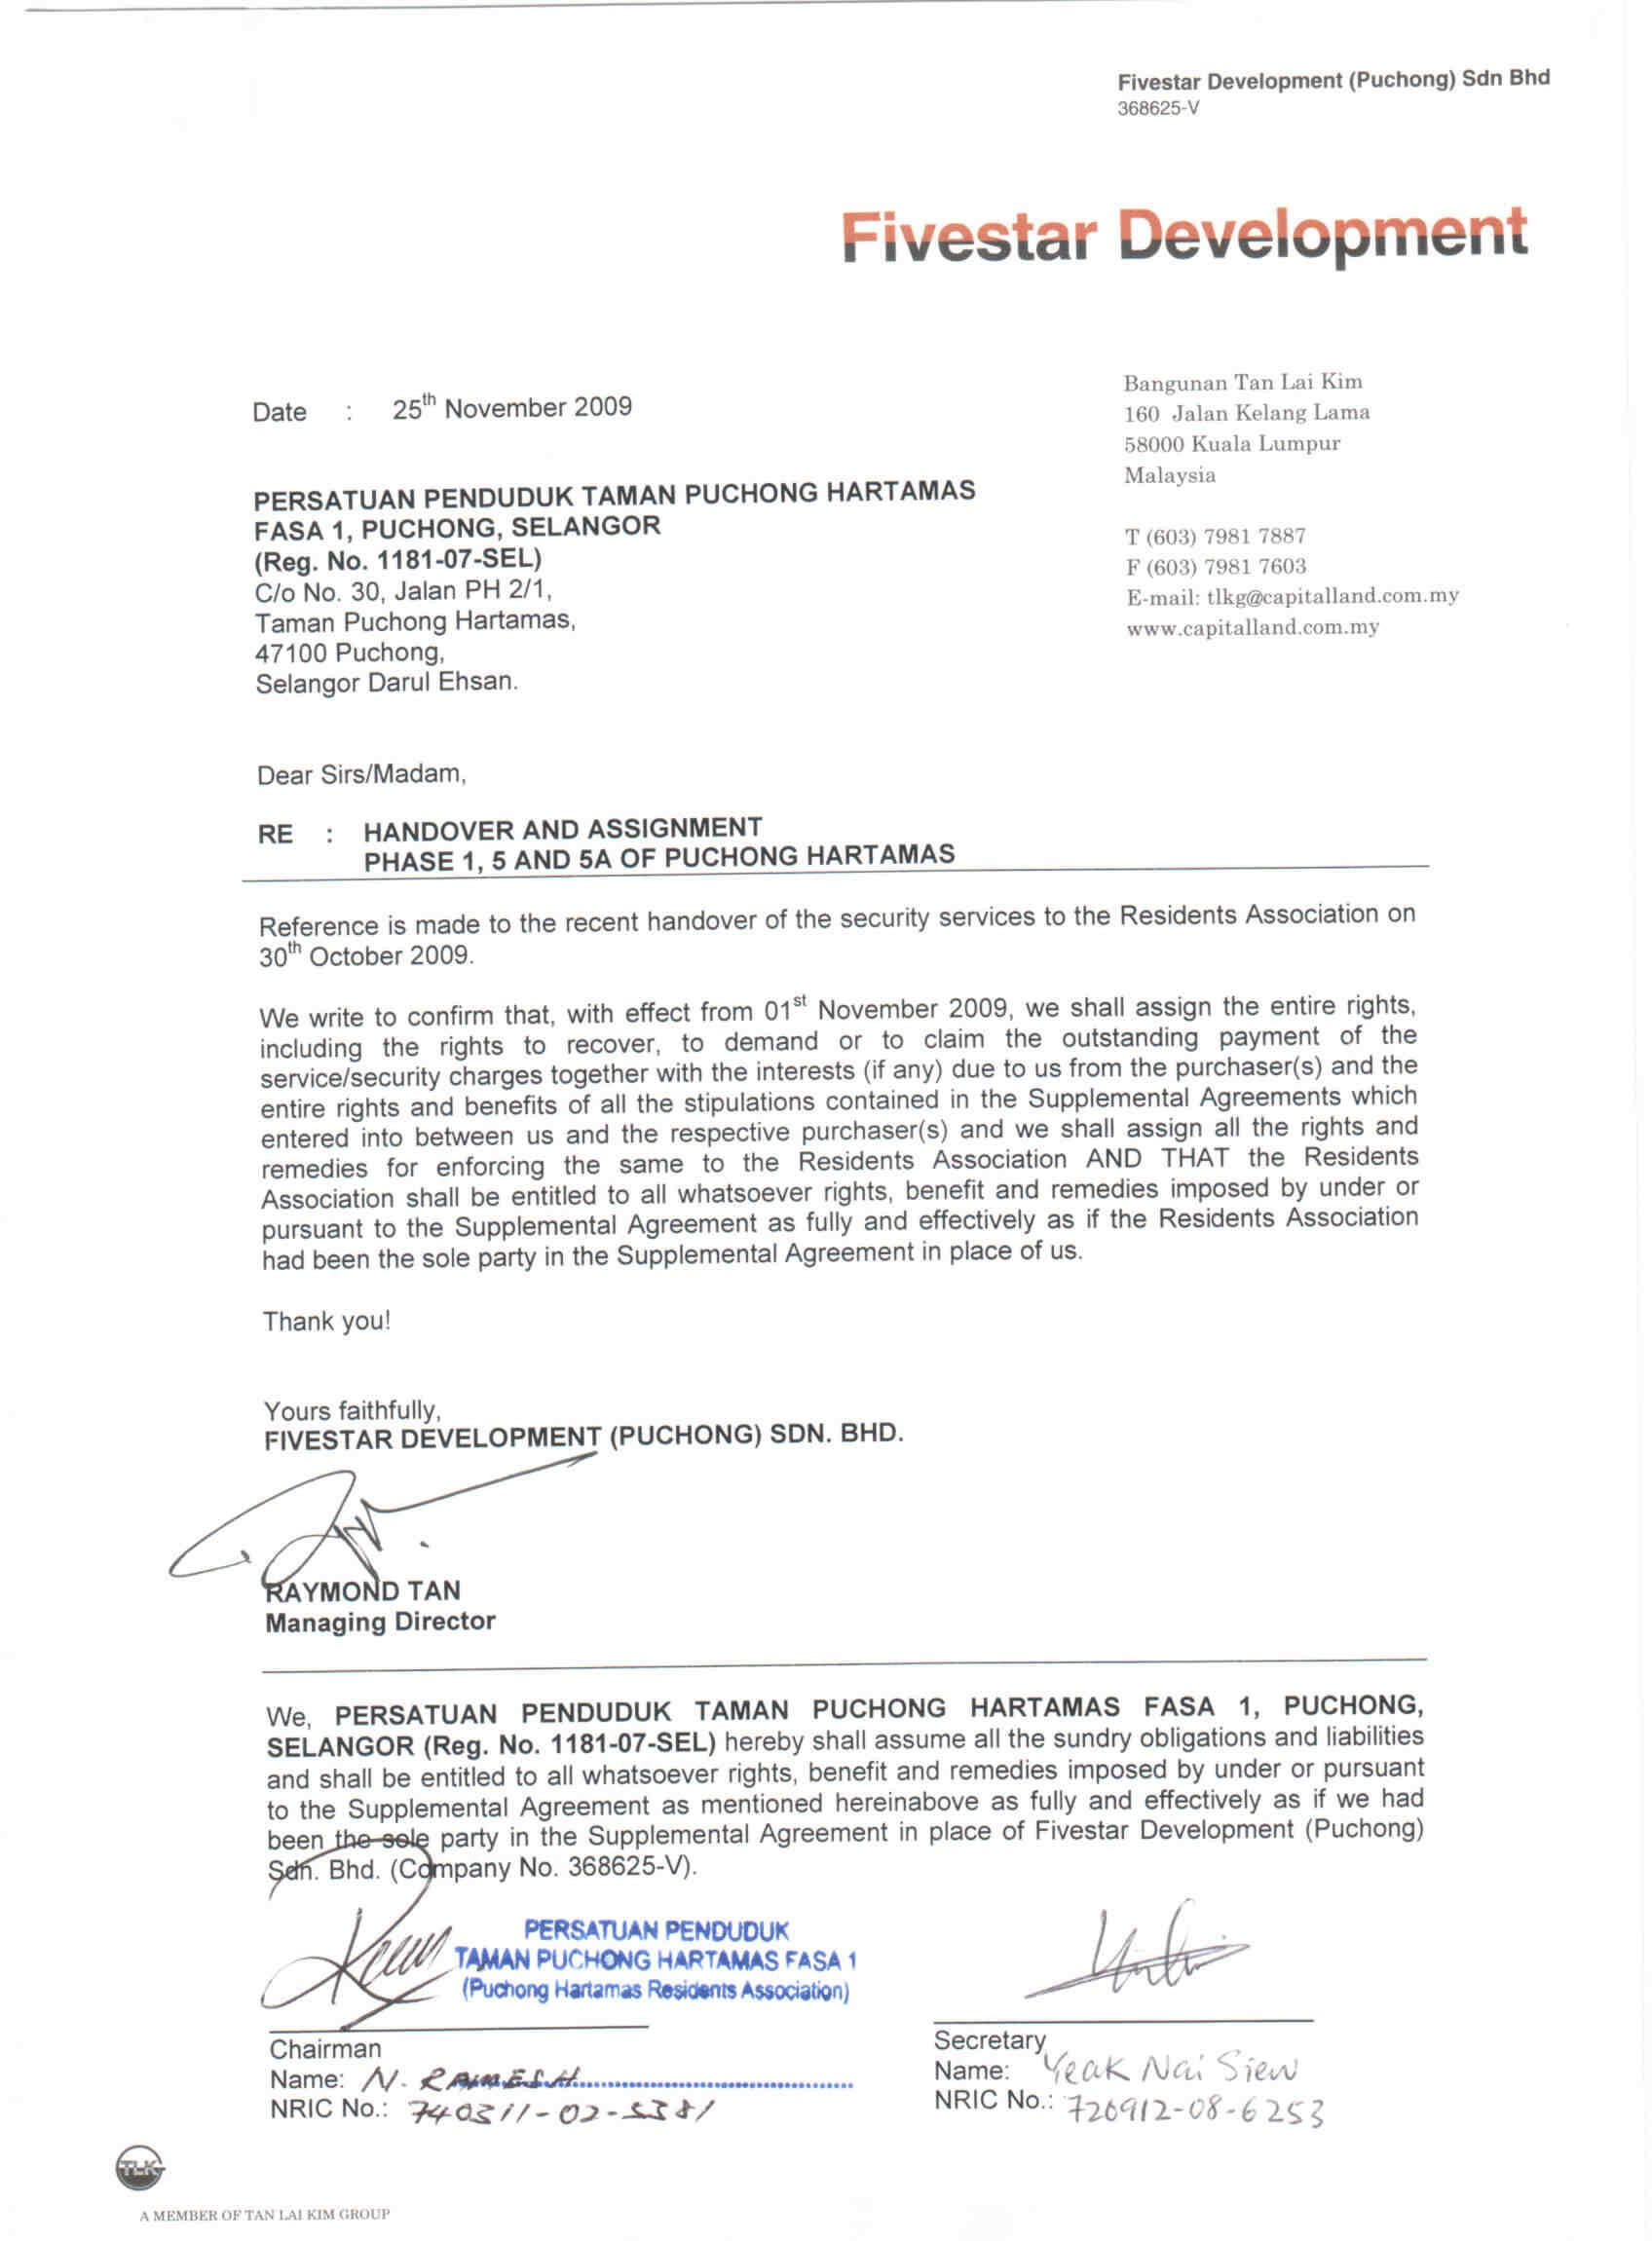 The Official Handover And Assignment Letter For intended for Handover Certificate Template